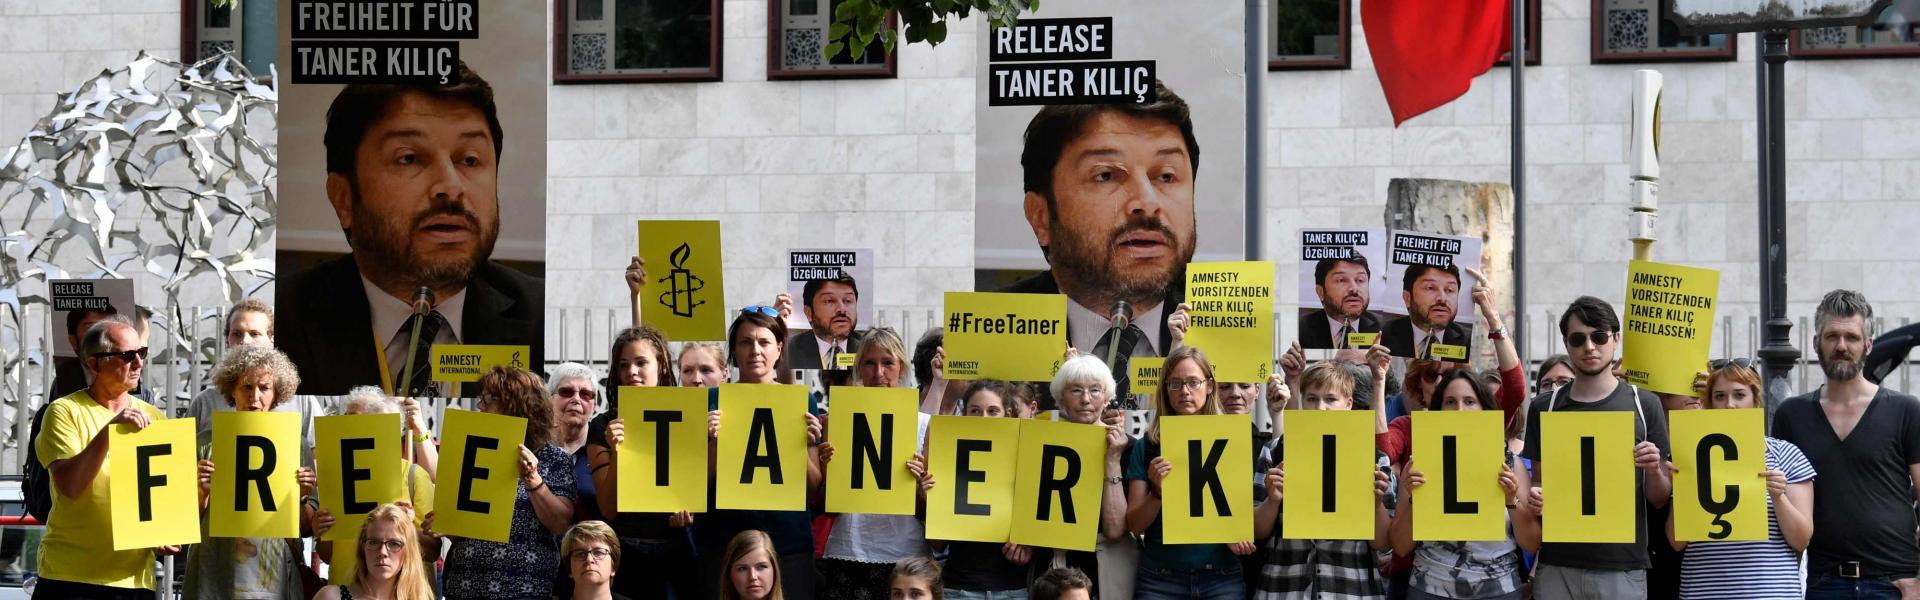 Activists of Amnesty International stage a protest against the detention of the head of Amnesty International in Turkey, Taner Kilic, in front of the Turkish Embassy in Berlin on June 15, 2017. AFP PHOTO / John MACDOUGALL